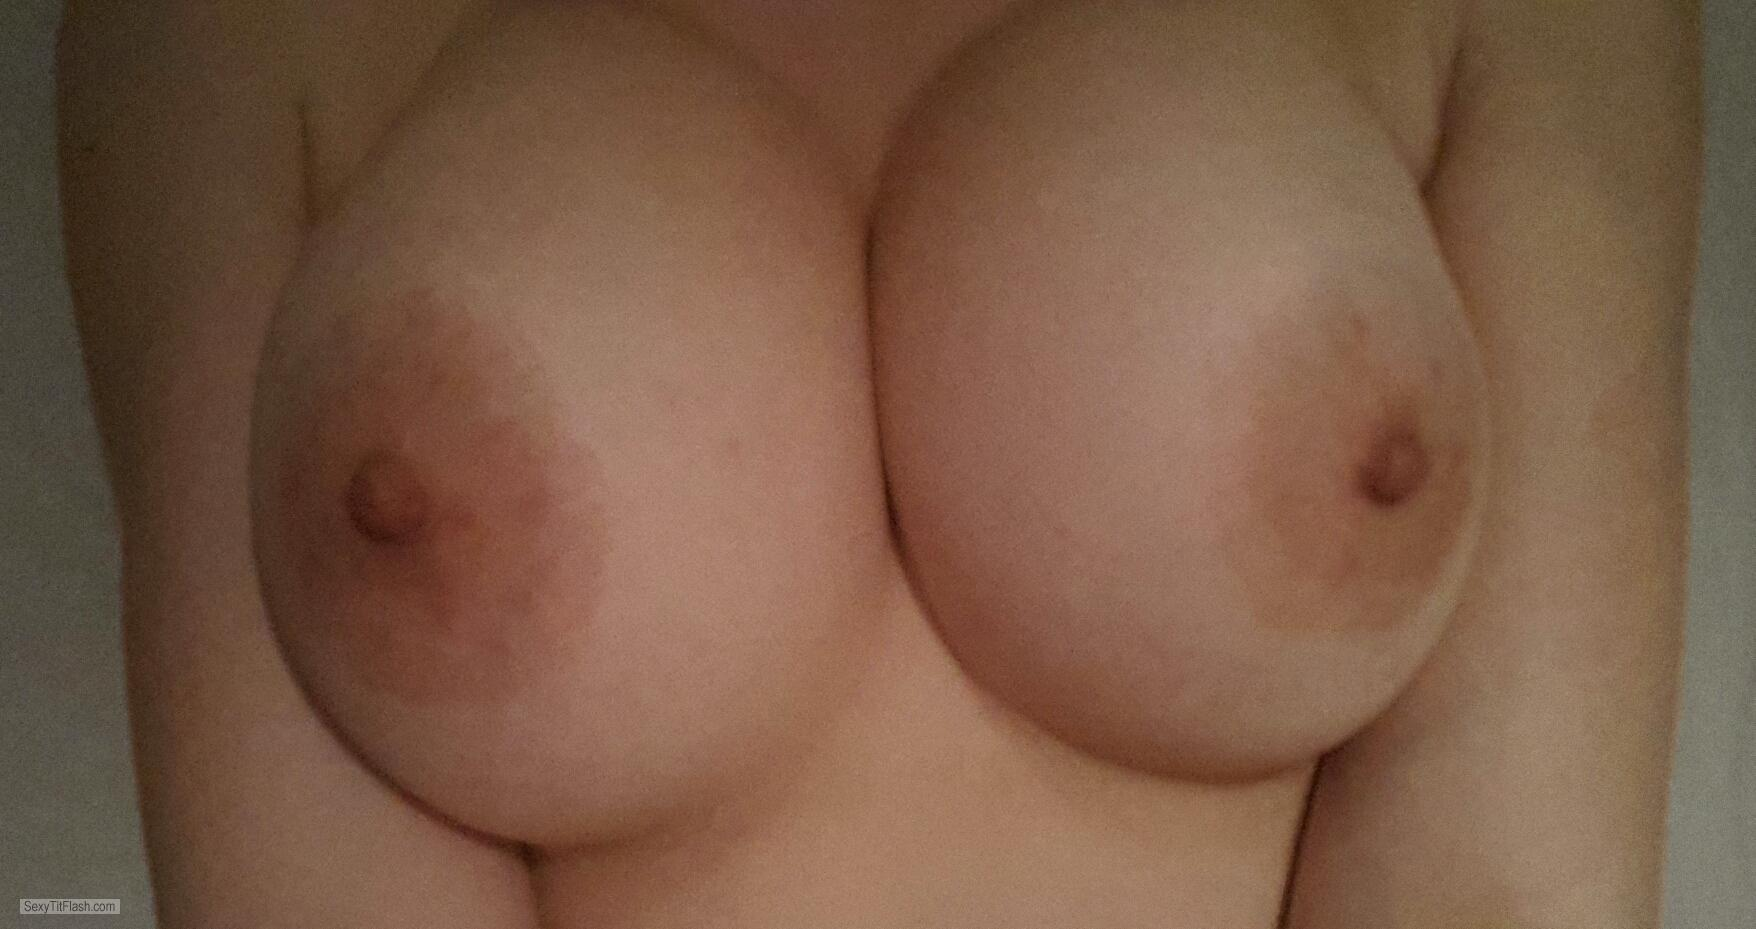 My Big Tits Selfie by Drea_an